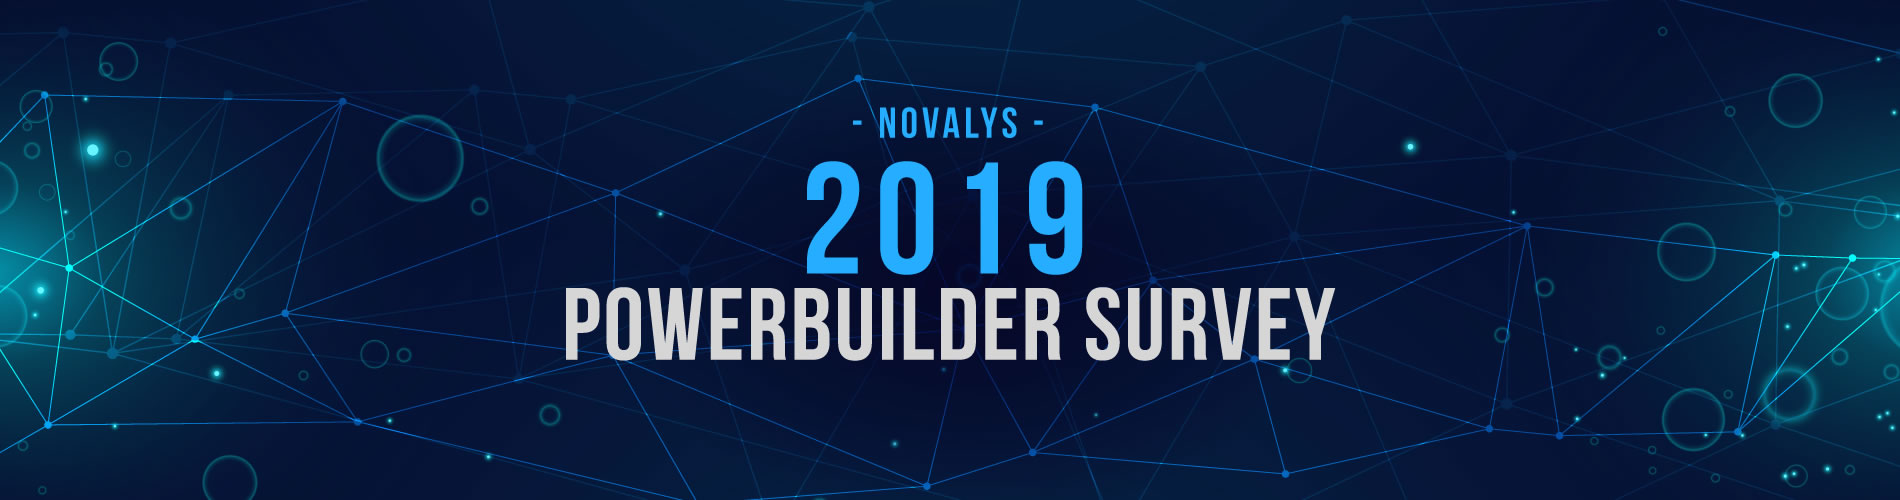 Novalys 2019 PowerBuilder Survey